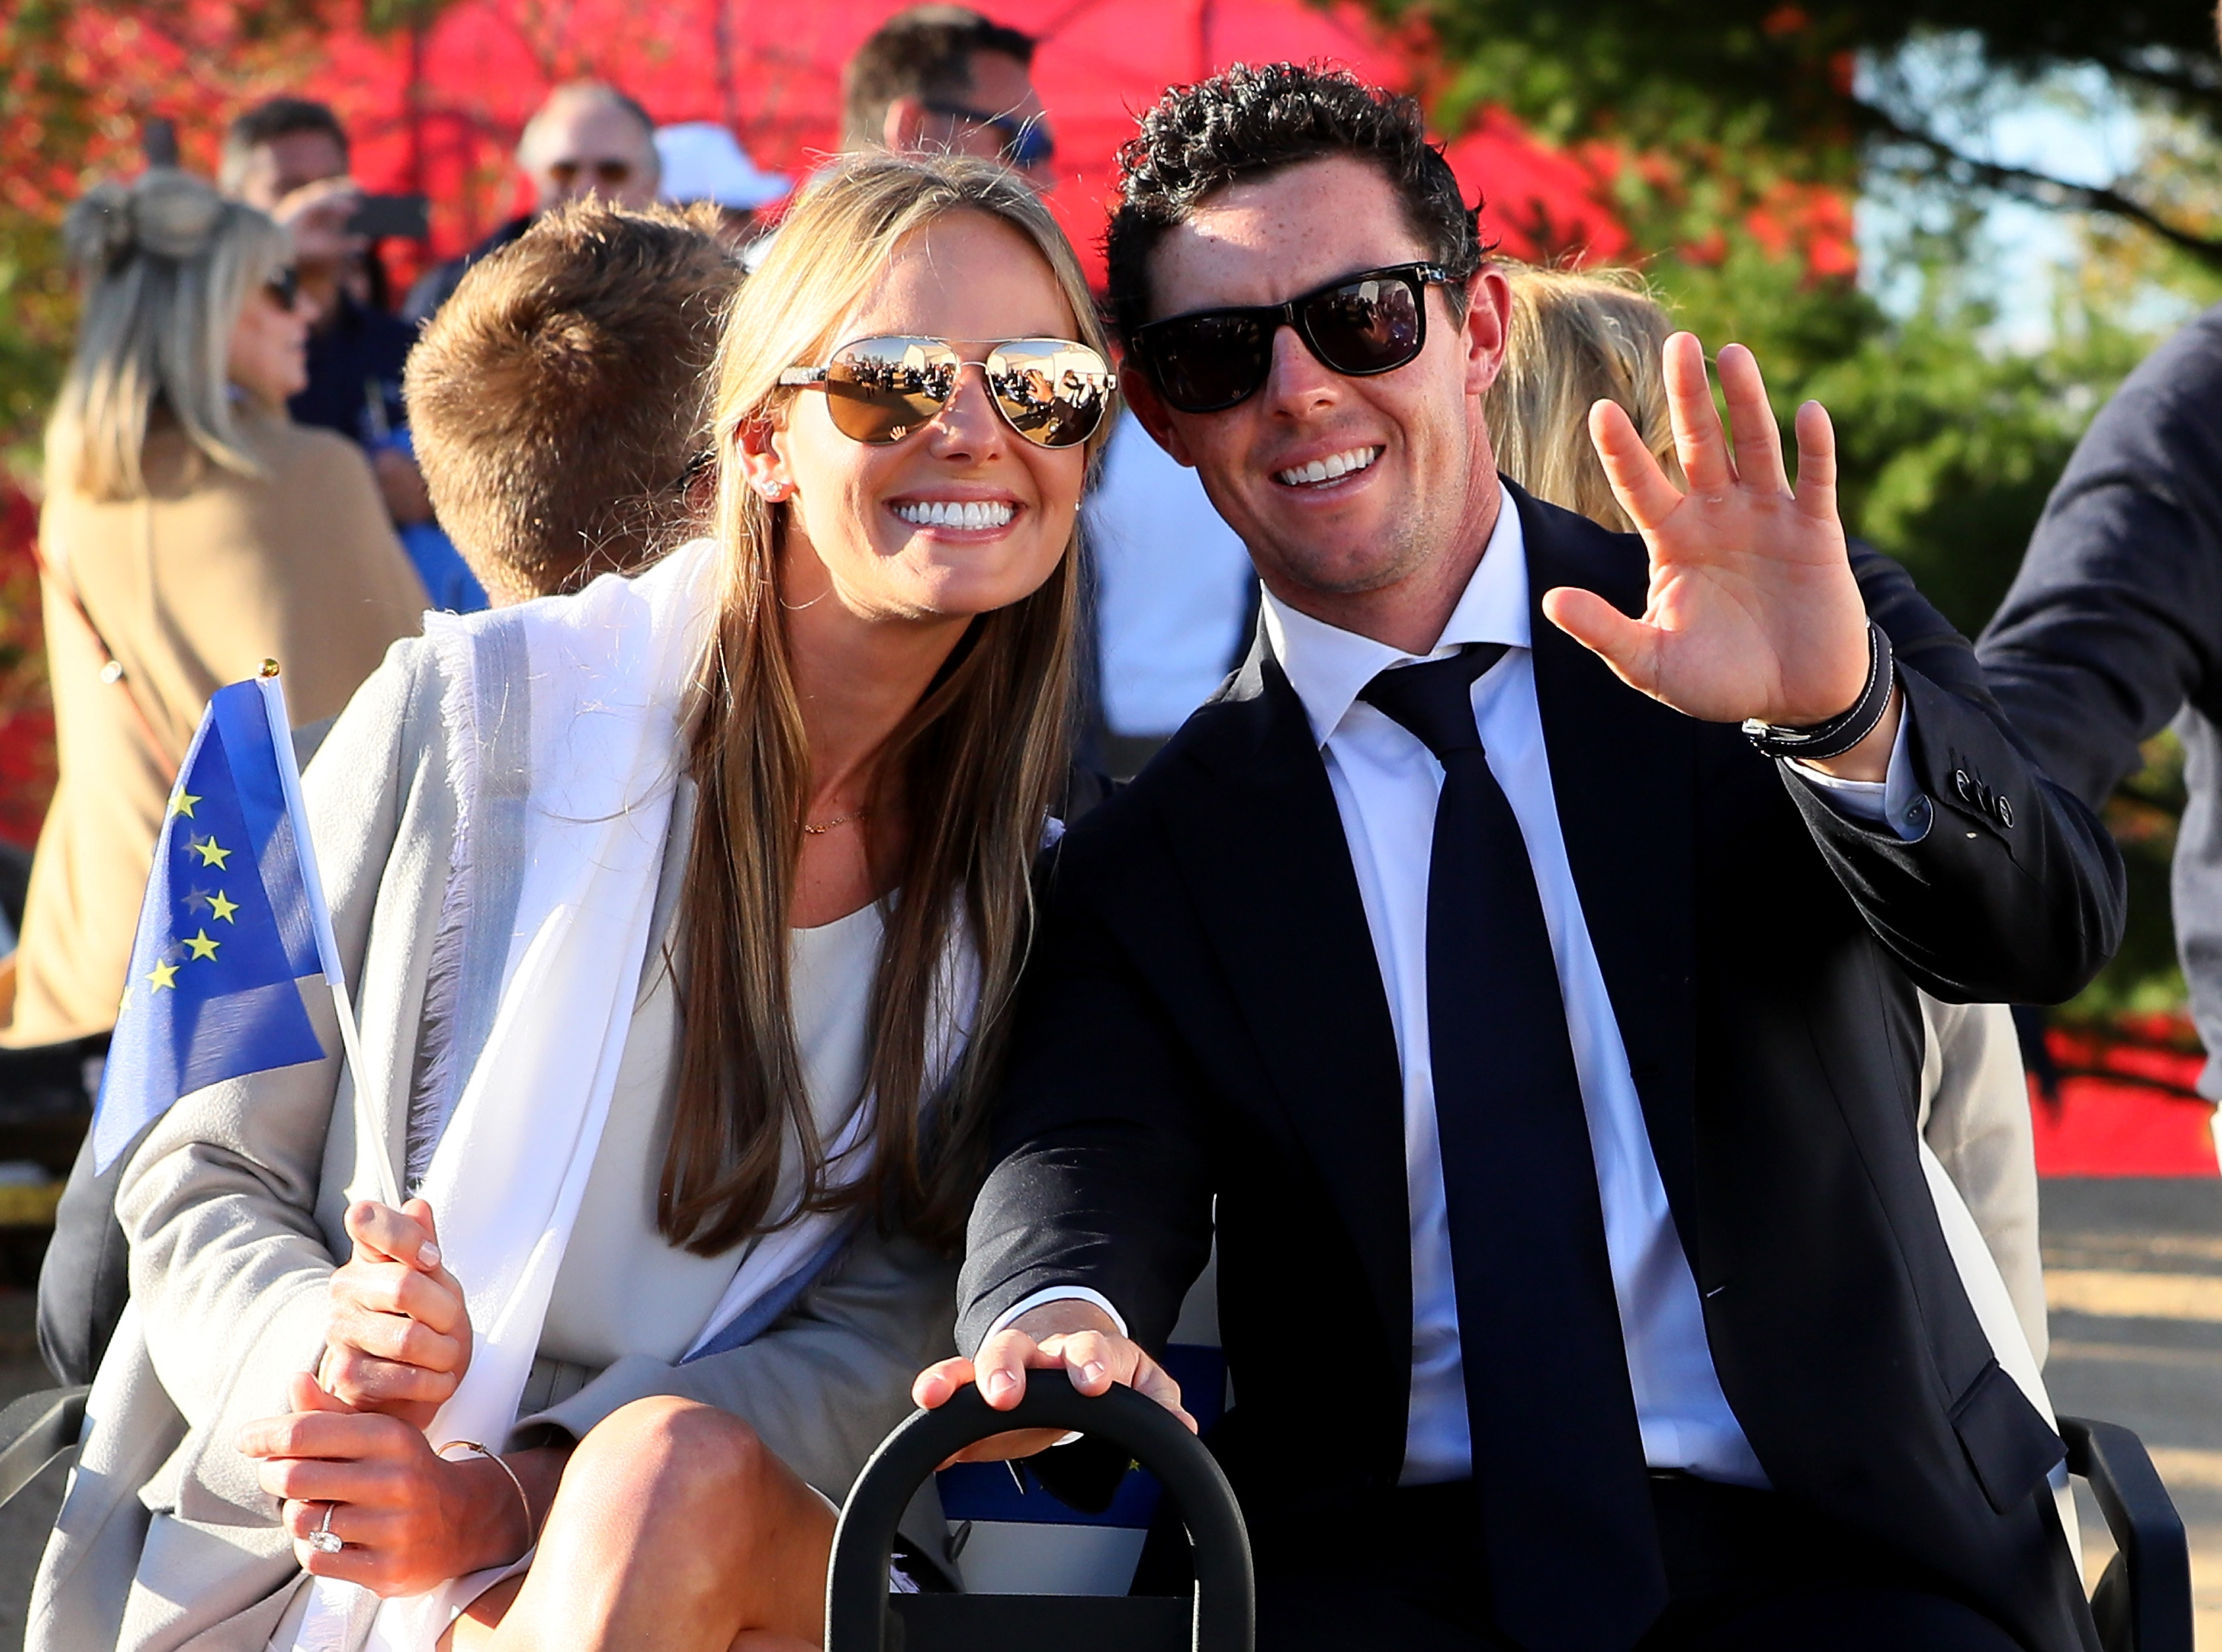 Erica Stoll and Rory McIlroy attend the 2016 Ryder Cup